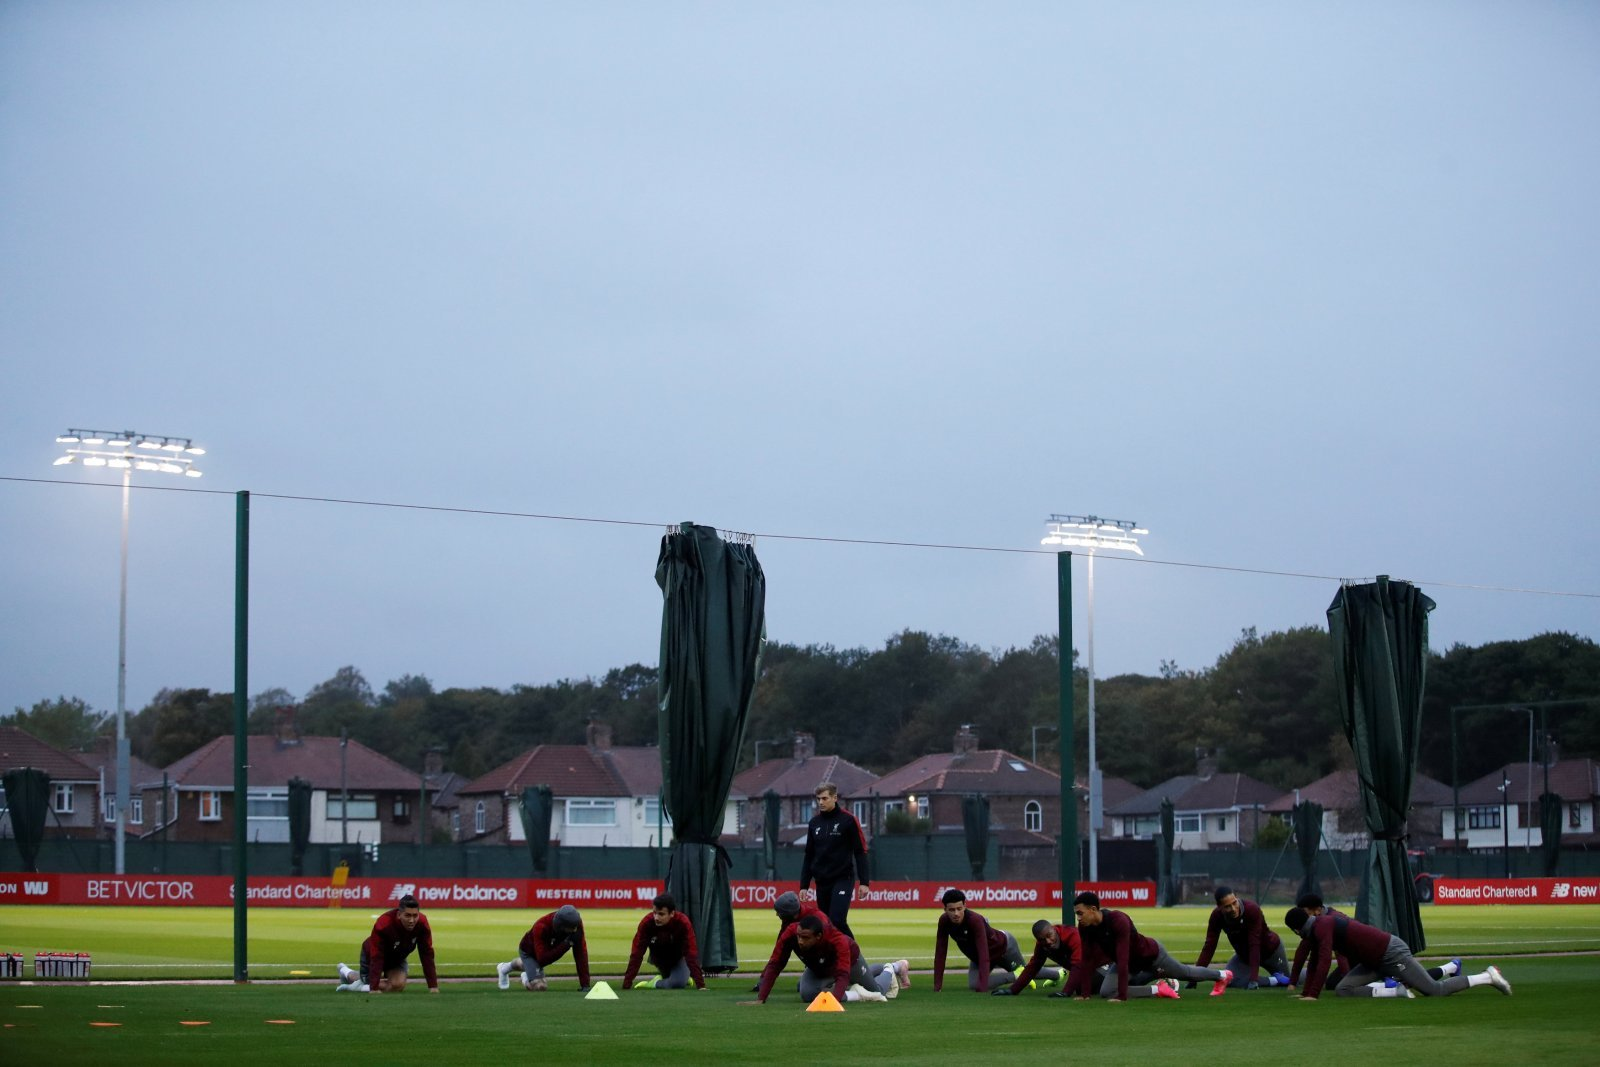 Liverpool fans react to training photos posted on Twitter